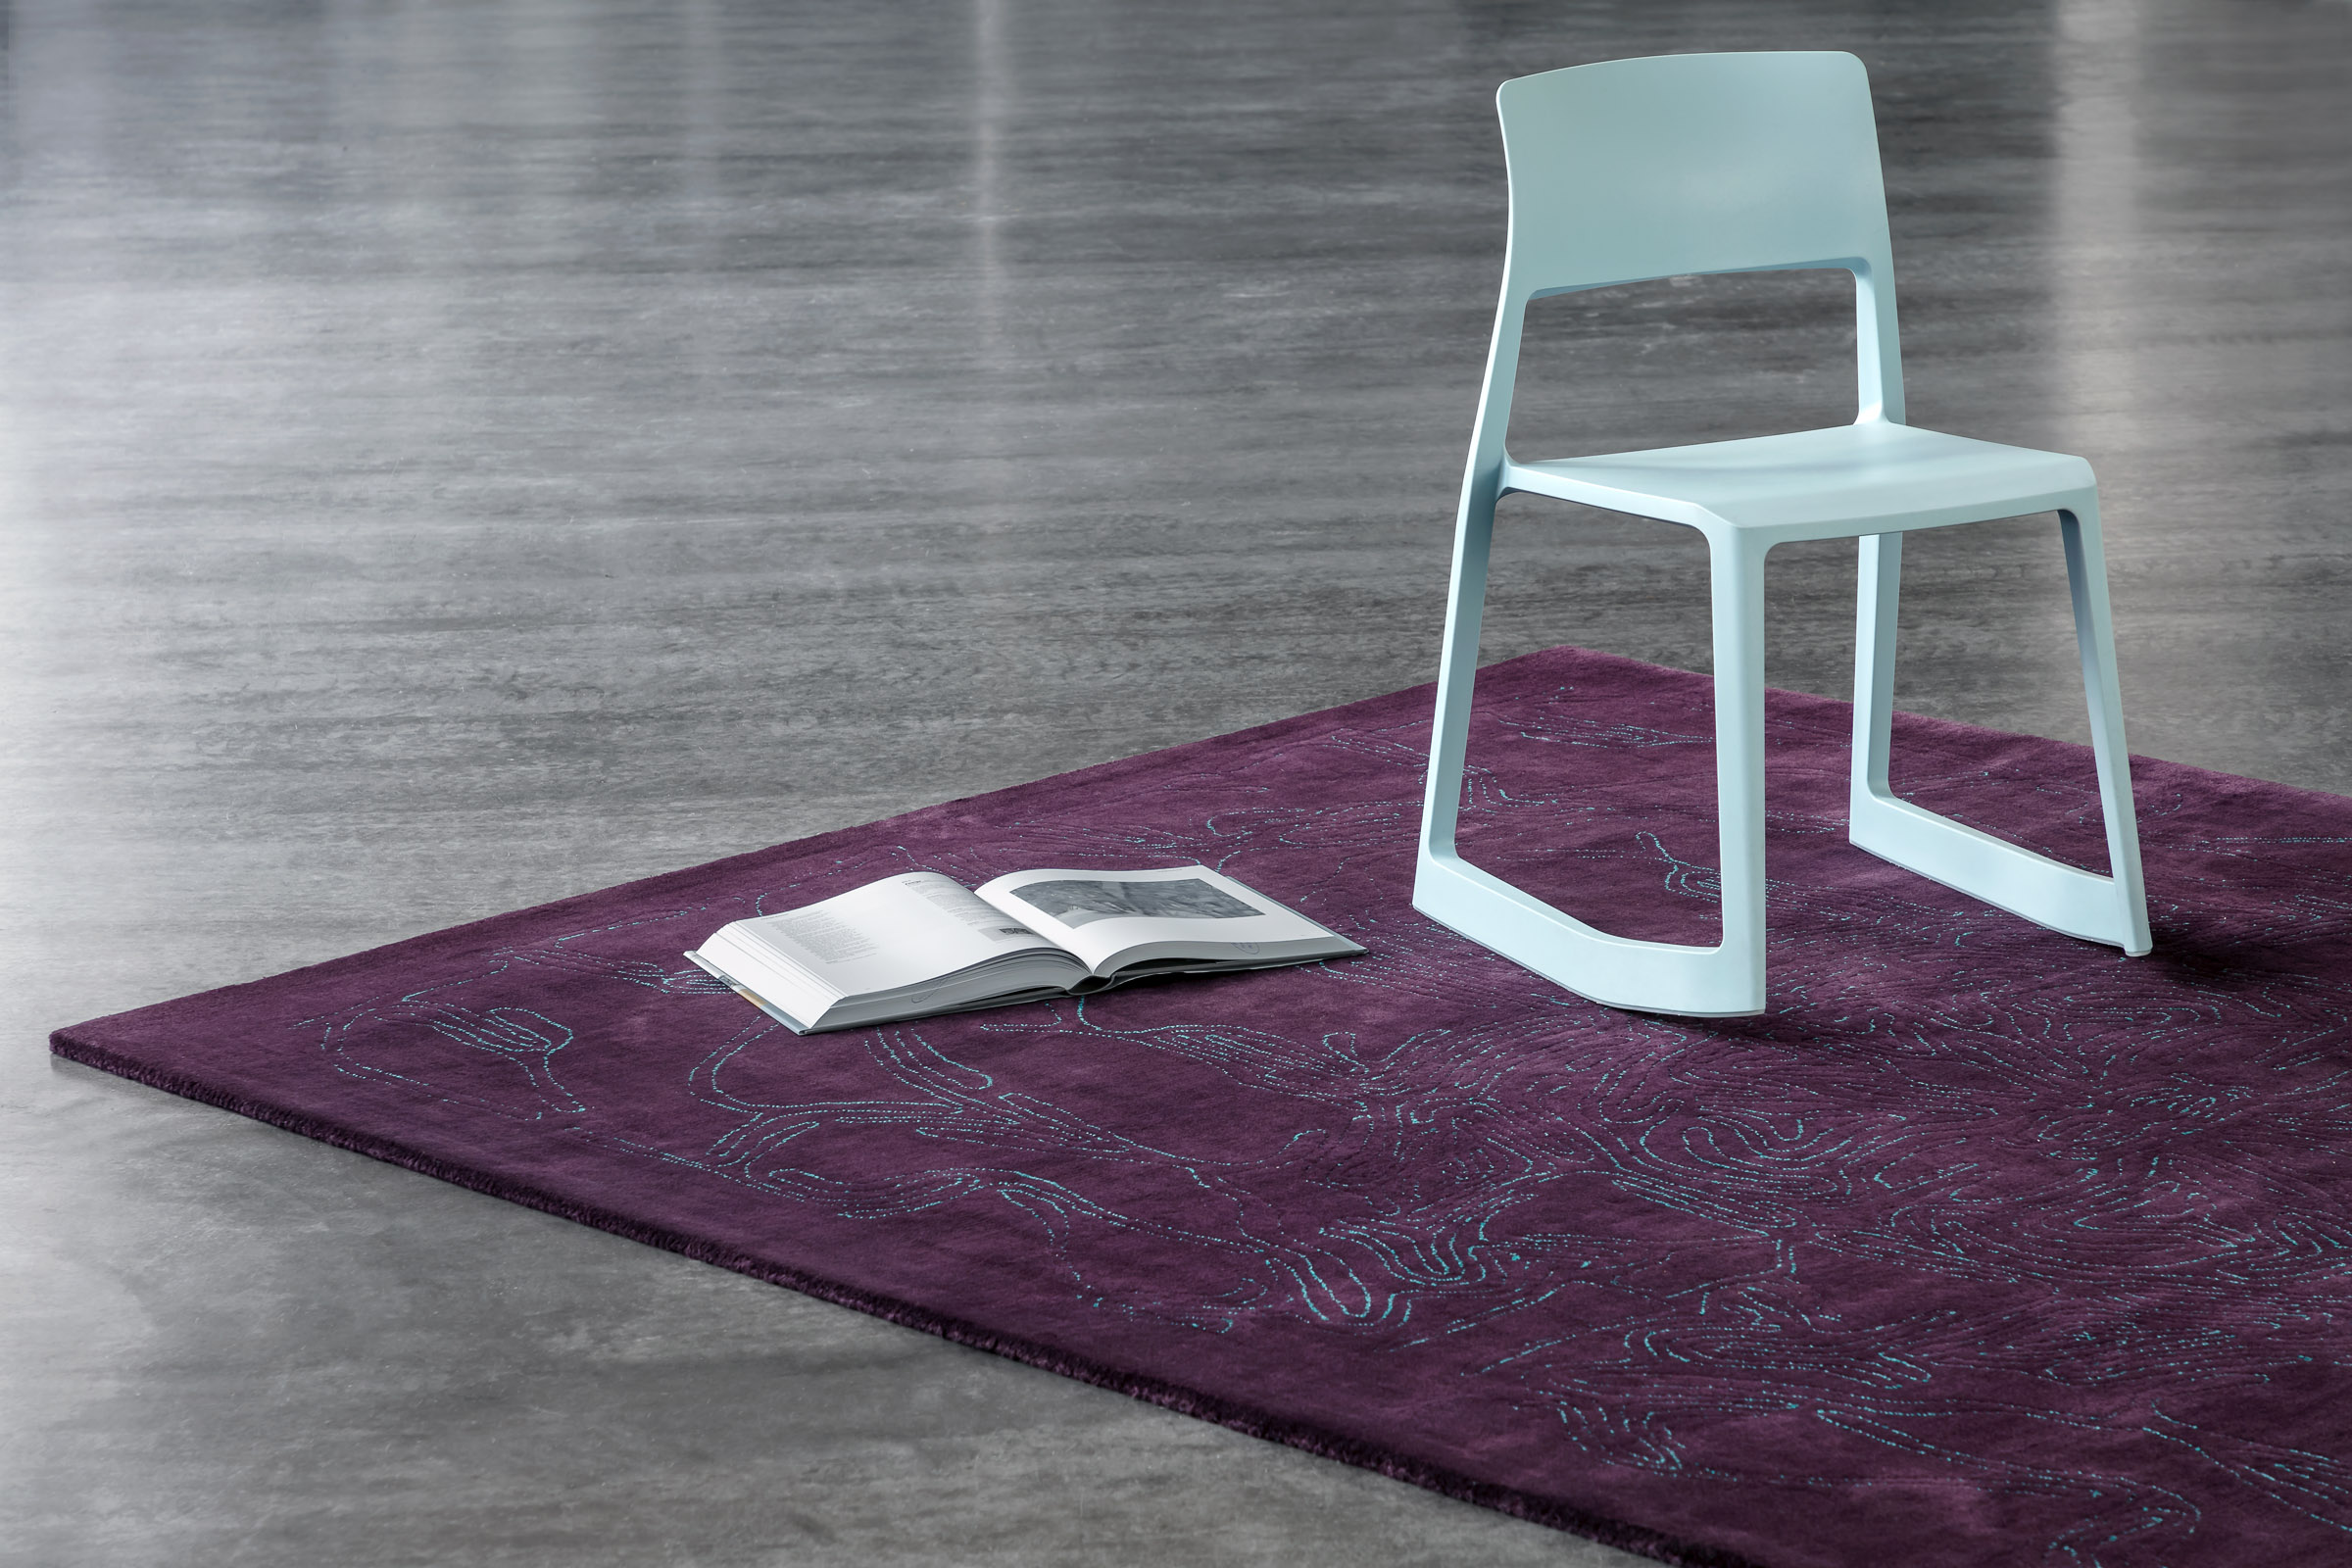 Fashion meets FLOORWEAR® – kymo's 2020 carpet innovations